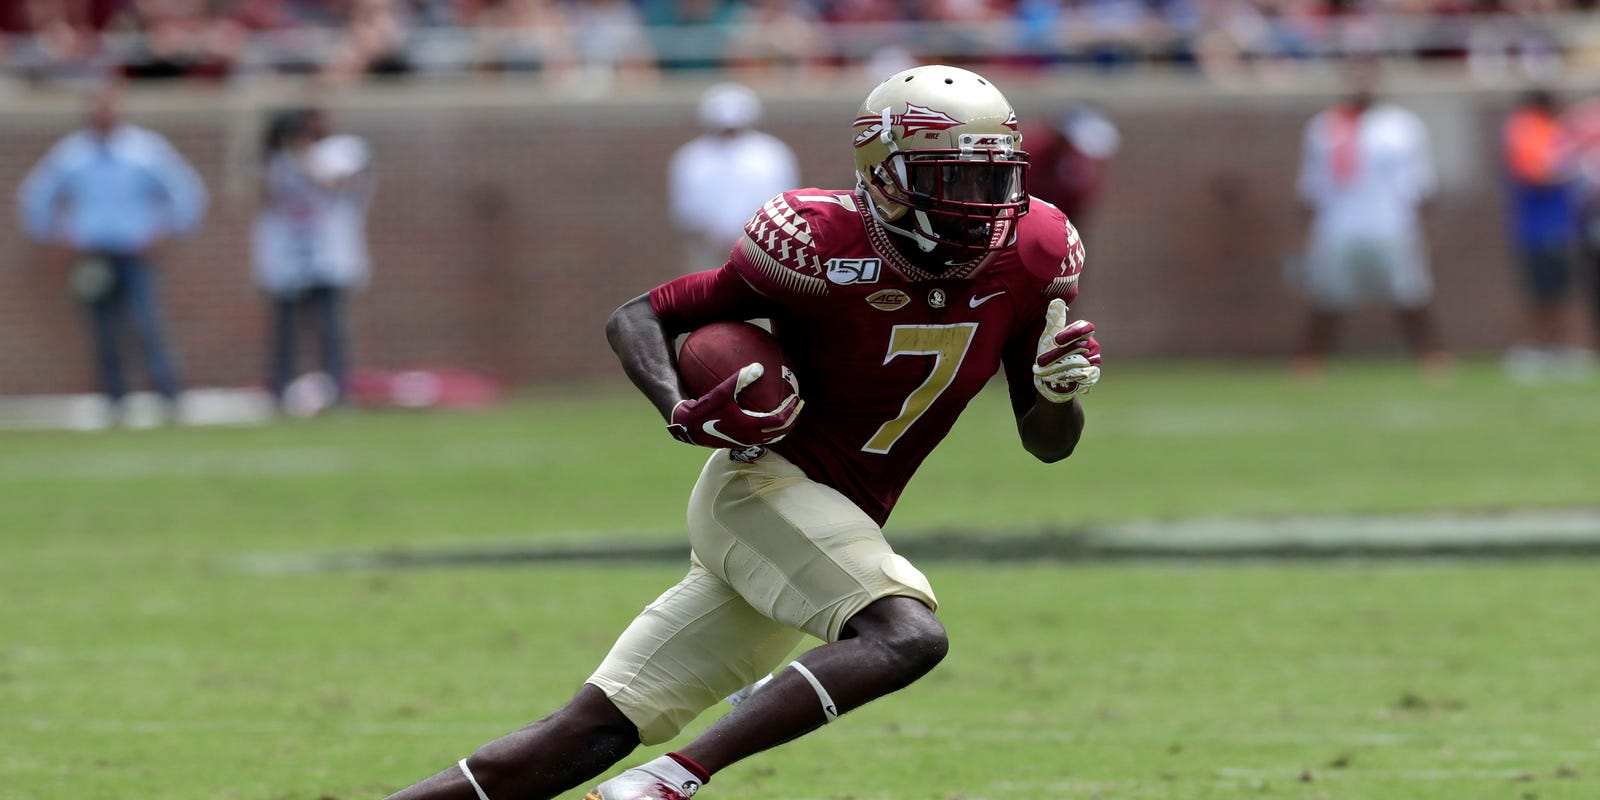 Final Missed Extra Point Gives Fsu Football An Overtime Win Over Ulm